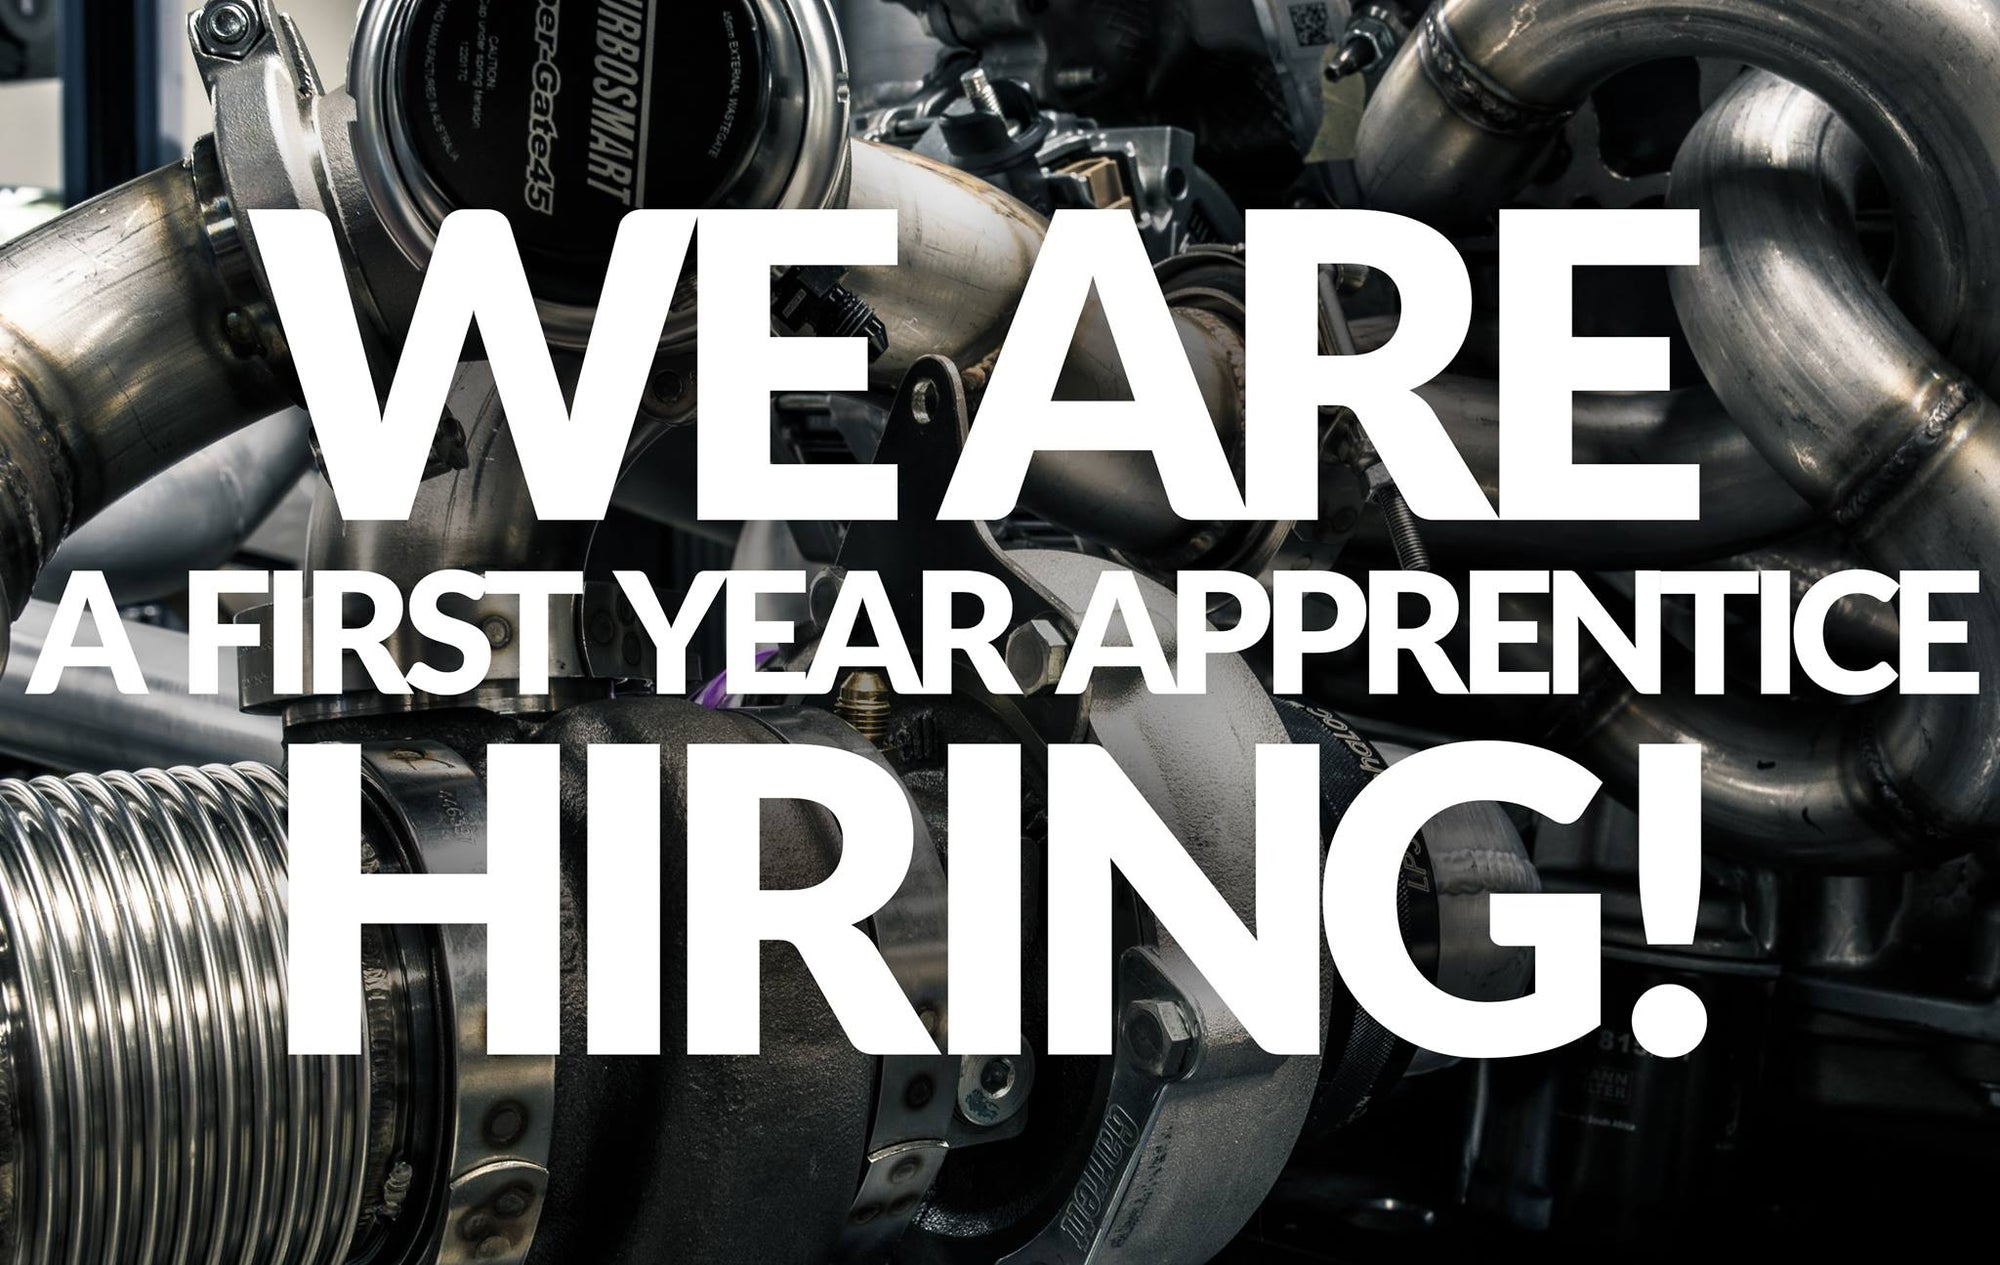 Apprentice Mechanic position available now at PR Technology